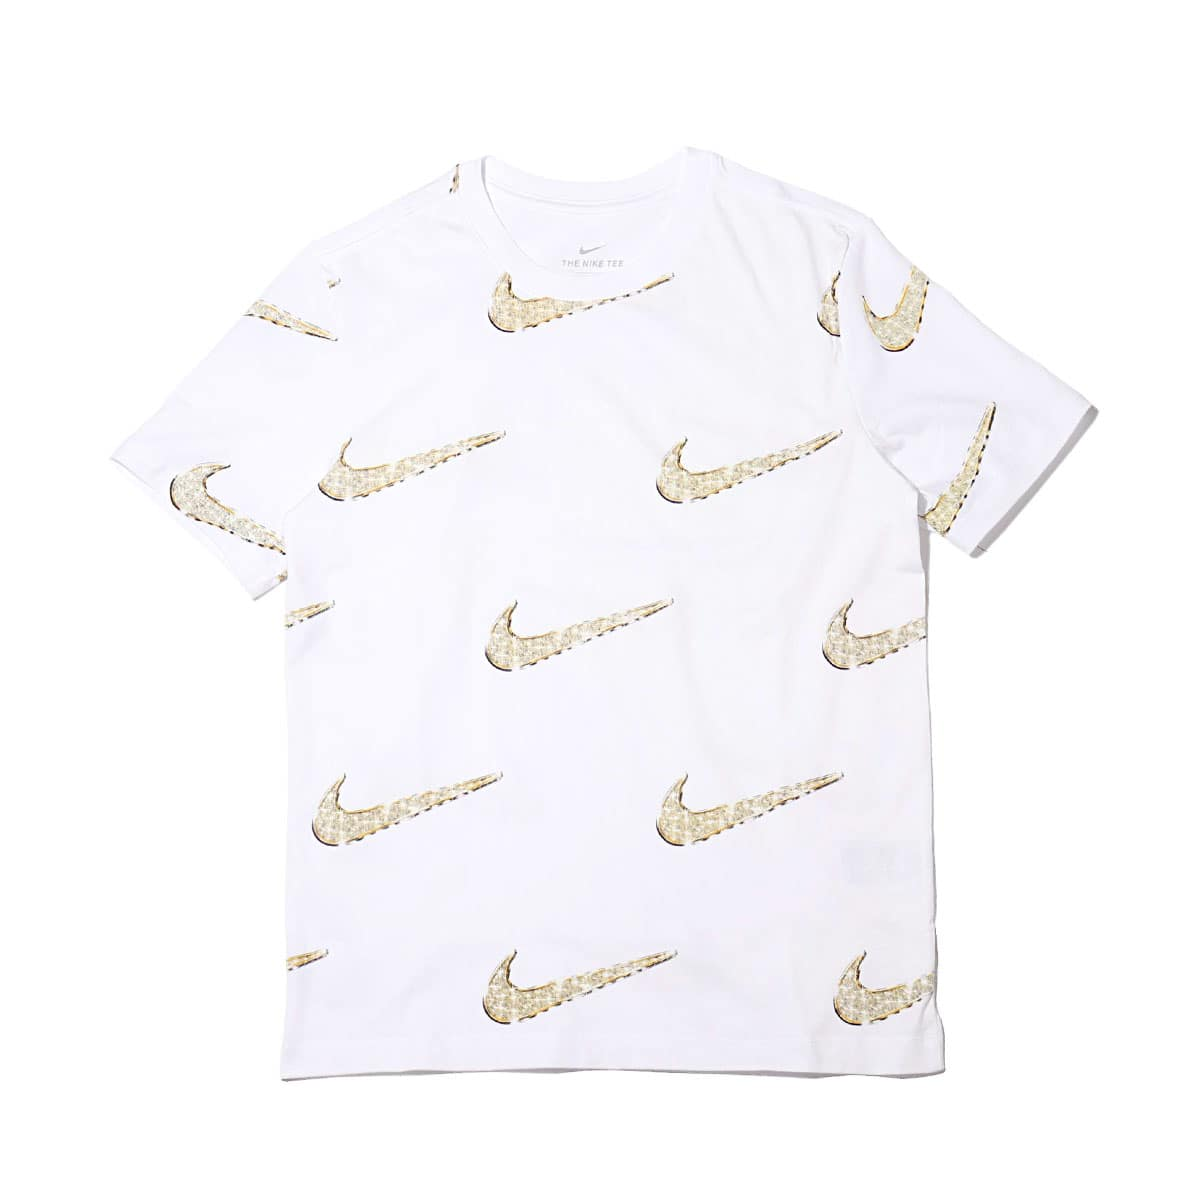 NIKE AS M NSW TEE SZNL STMT 5 WHITE 19SU-I_photo_large